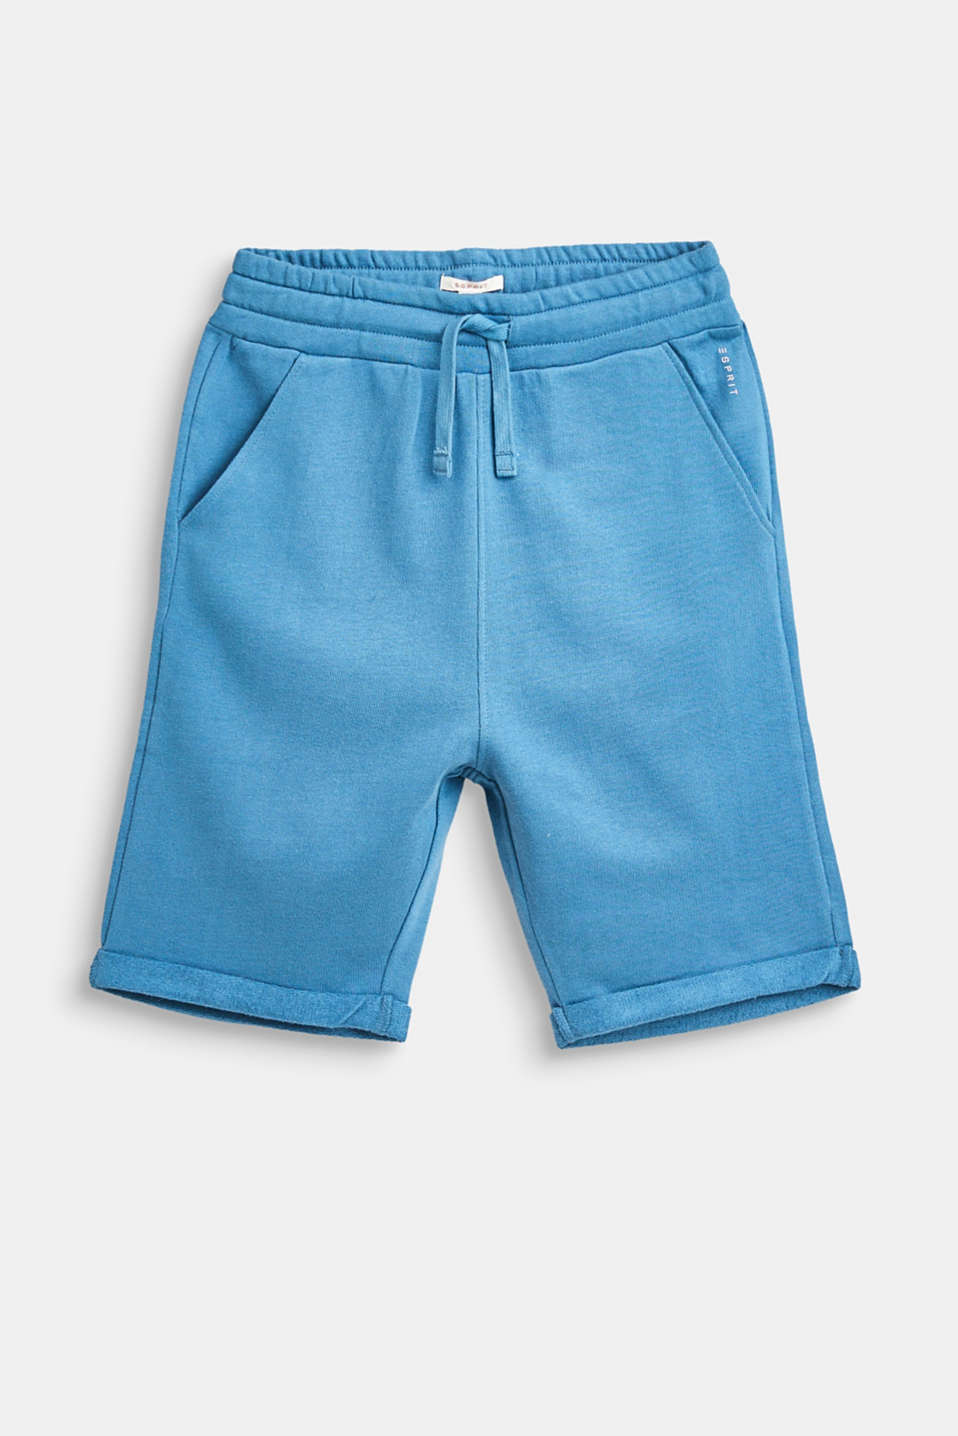 Esprit - Basic sweat shorts in 100% cotton